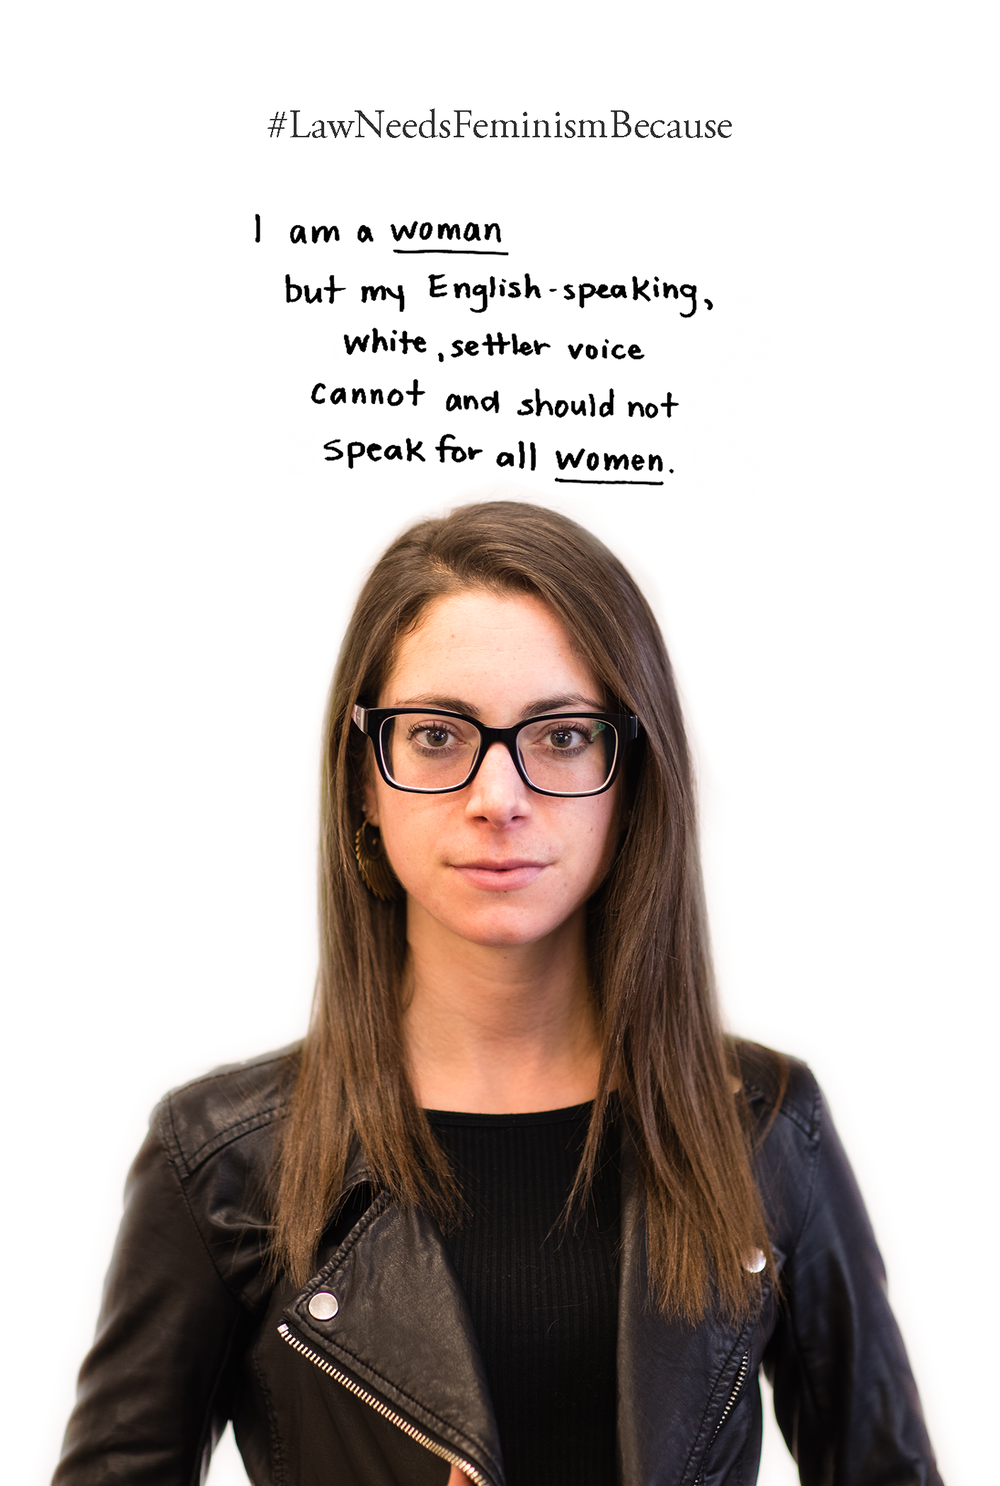 Law Needs Feminism Because  I am a woman but my English-speaking, white, settler voice cannot and should not speak for all women.